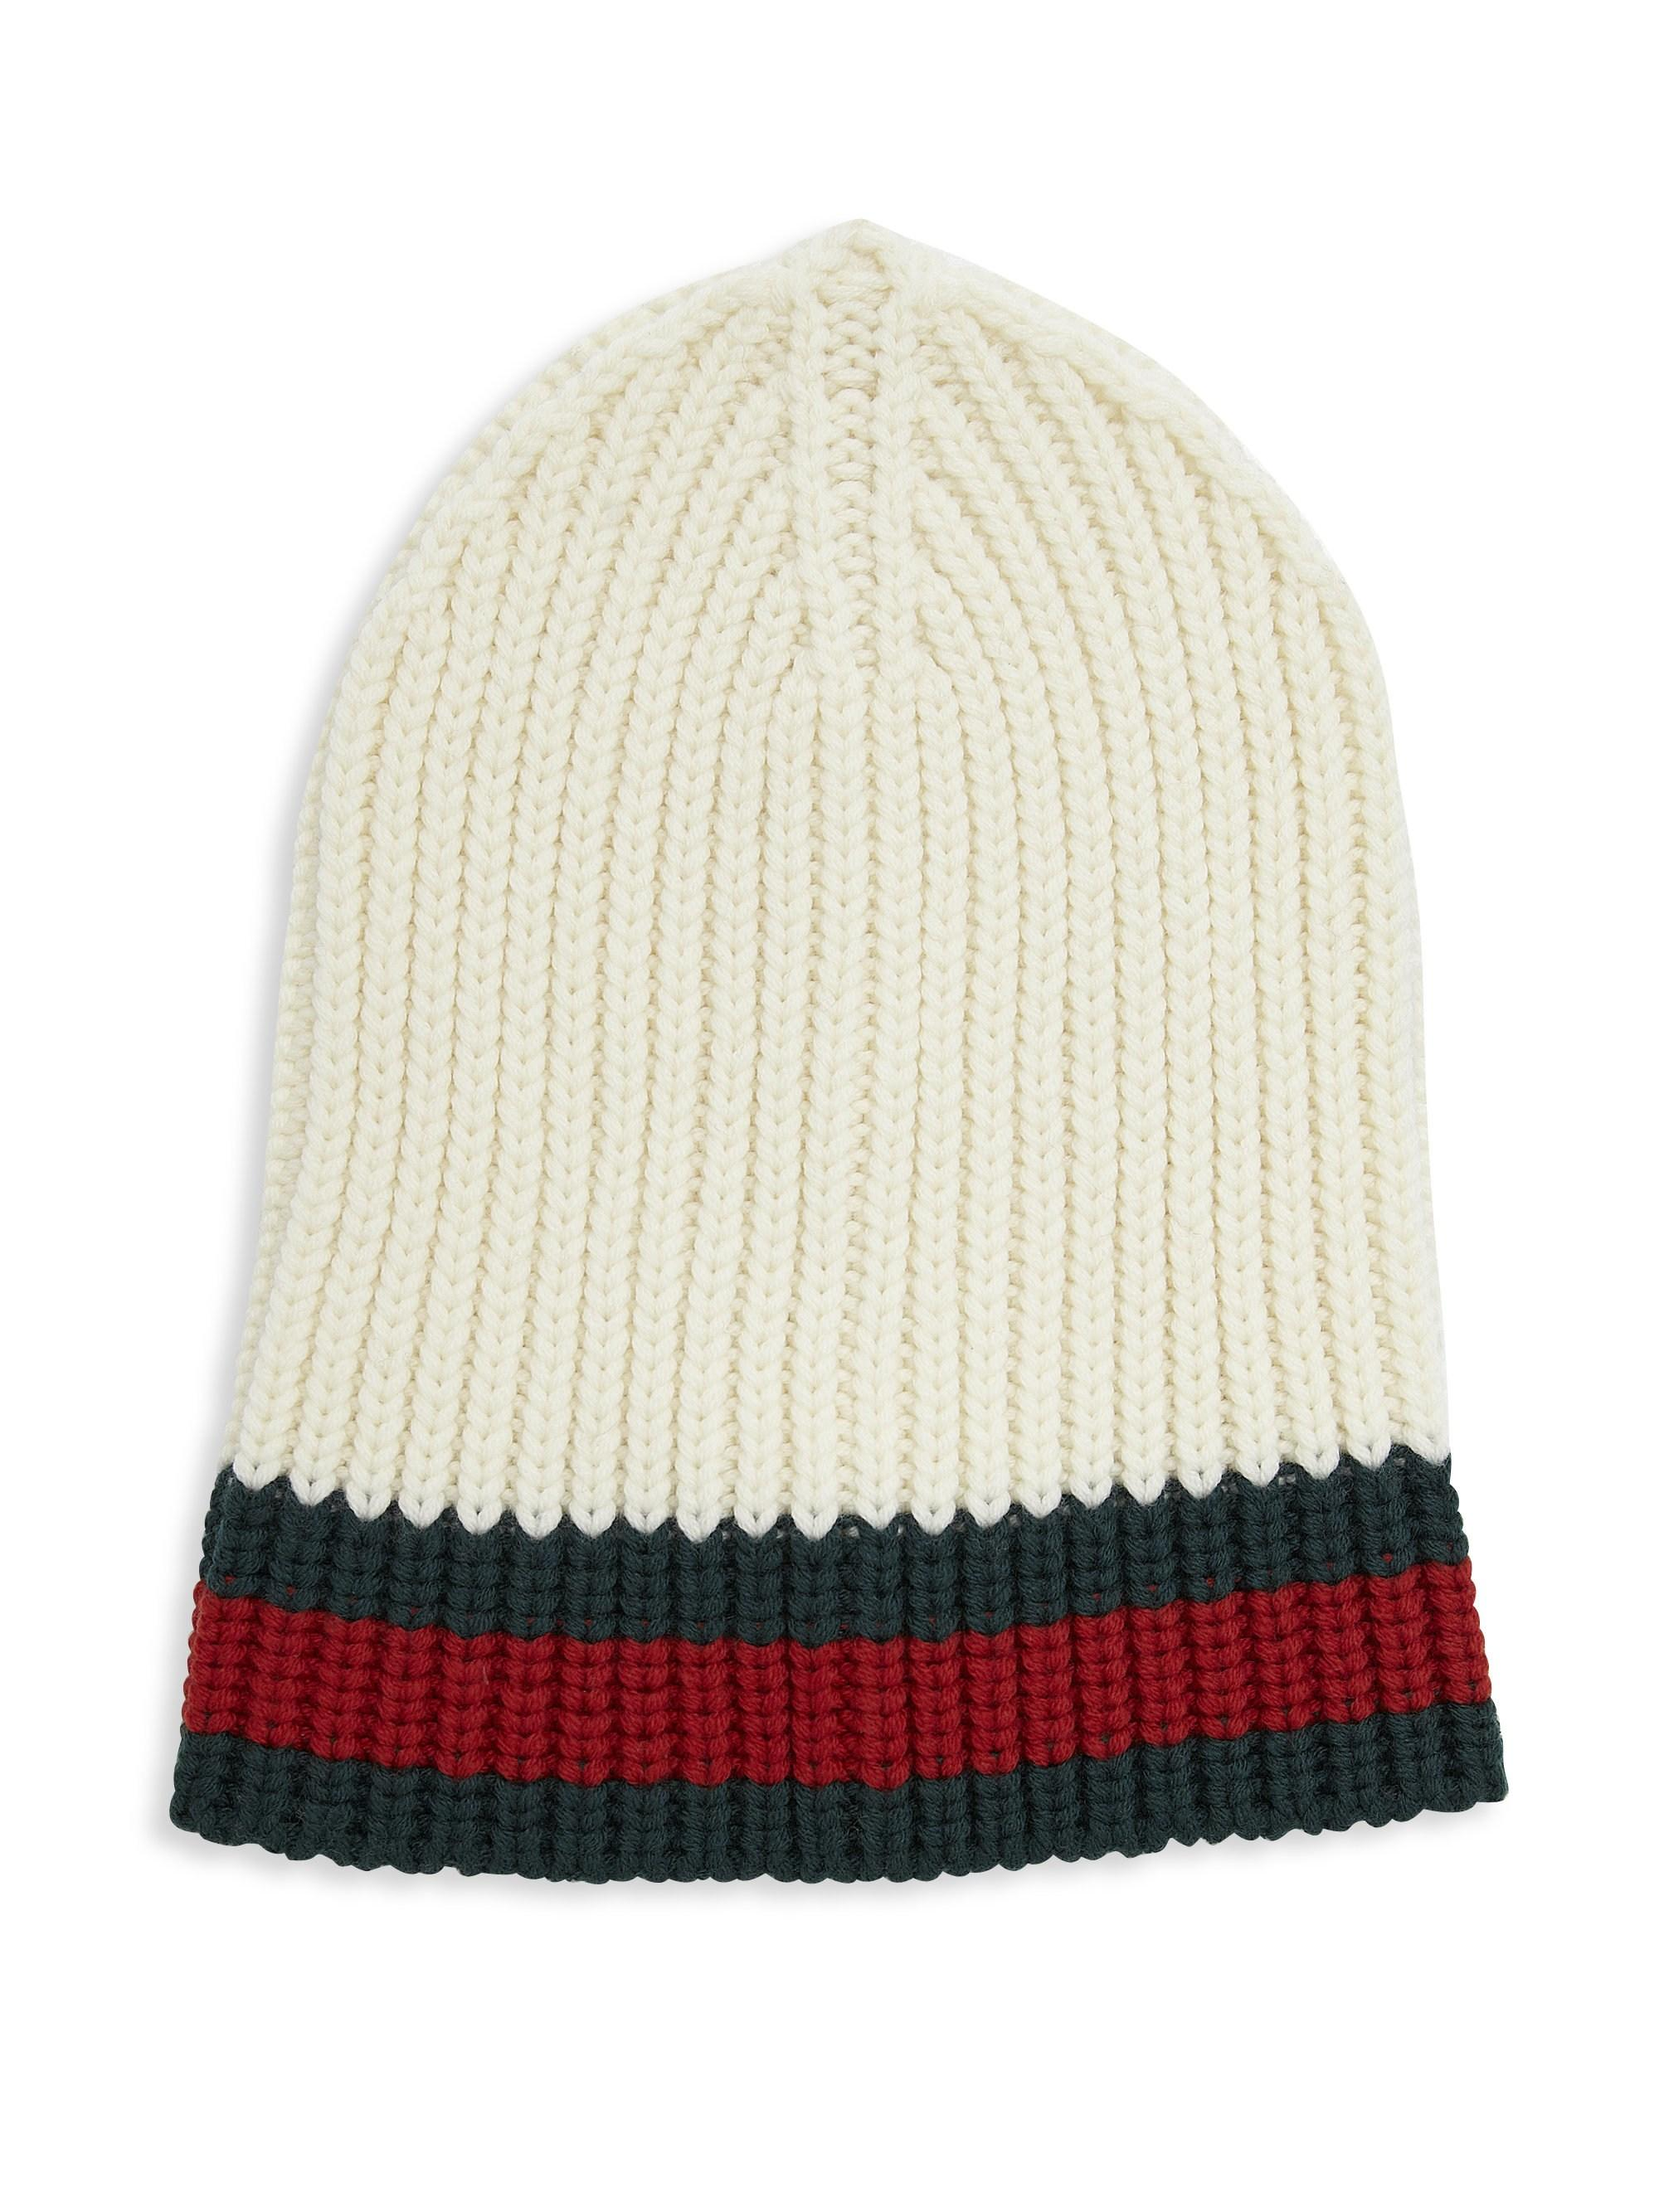 Lyst - Gucci Charui Striped Wool Hat in White for Men e7be6d70278